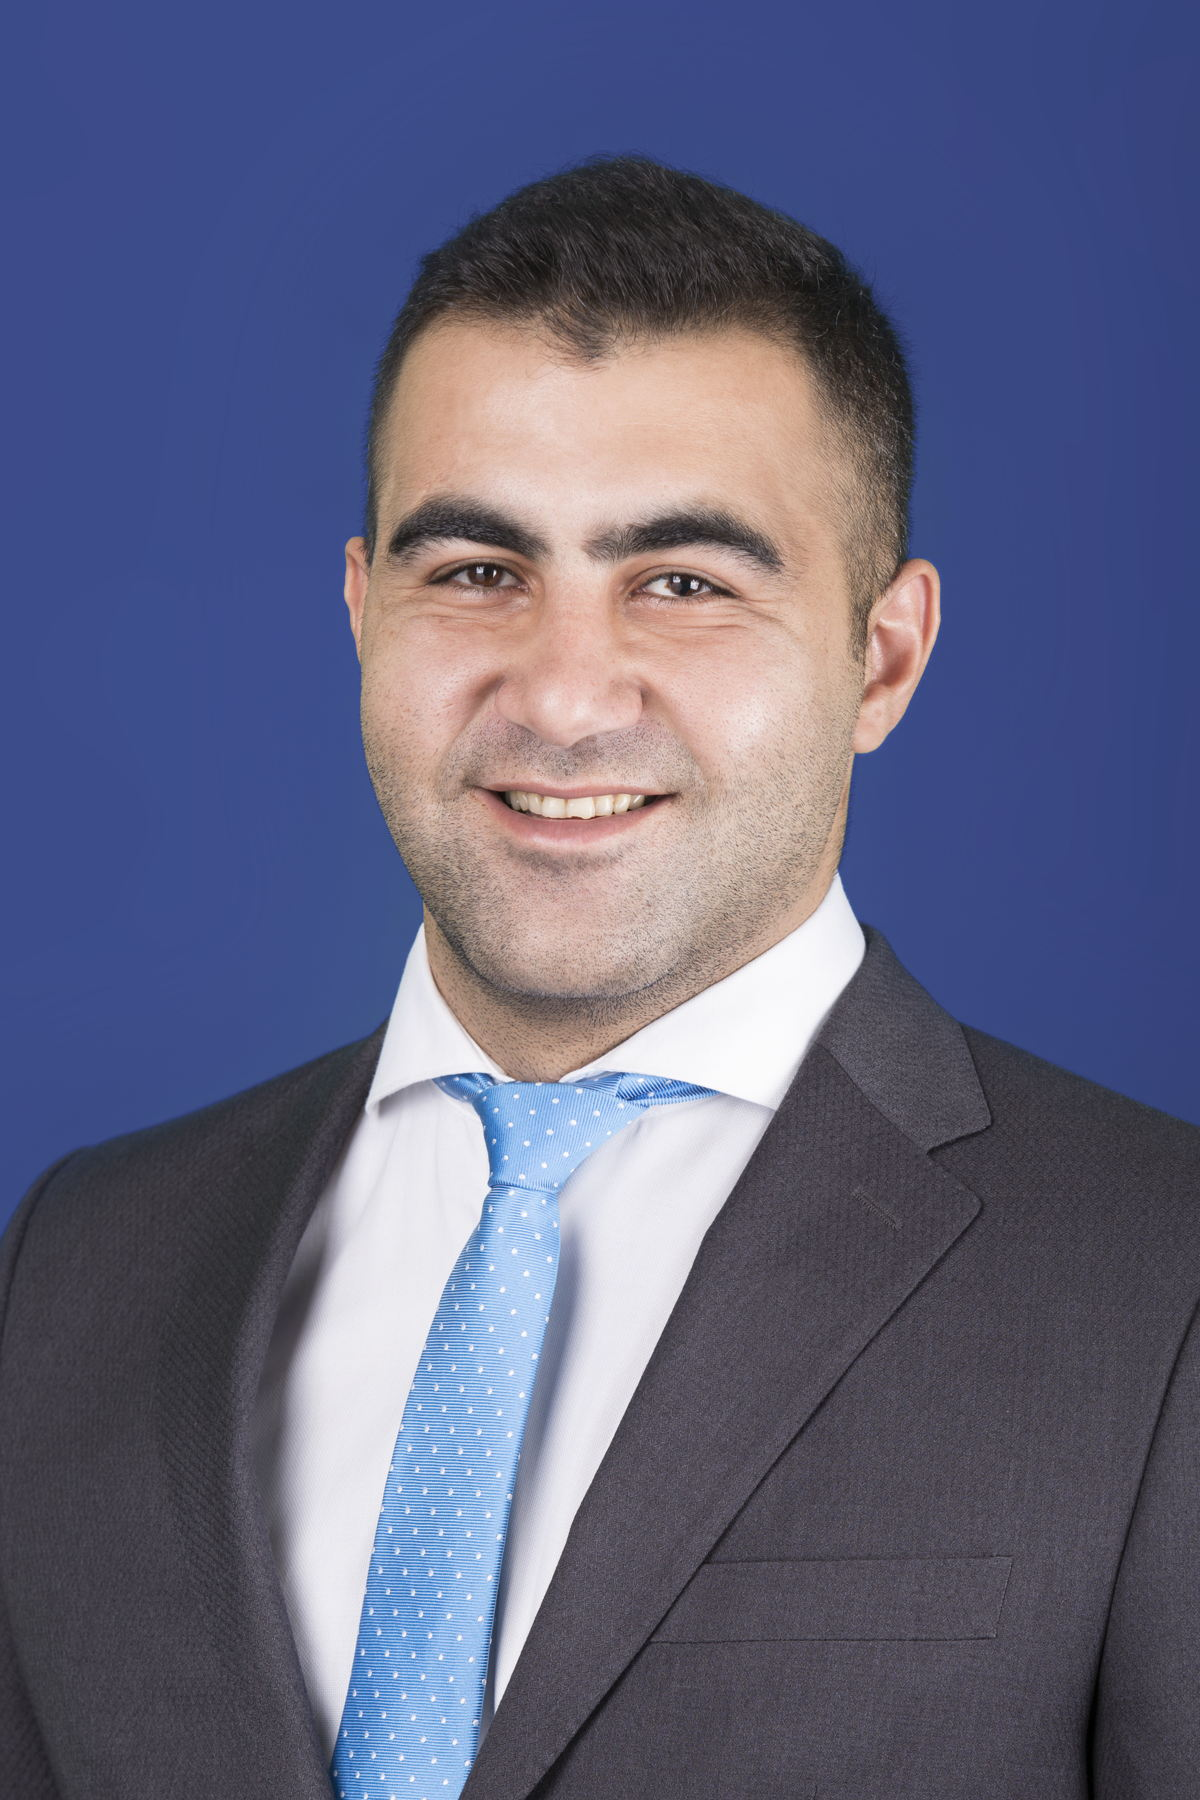 Mr. Youssef A. Wazni, Senior Sales Manager at Thyssenkrupp Elevator Qatar